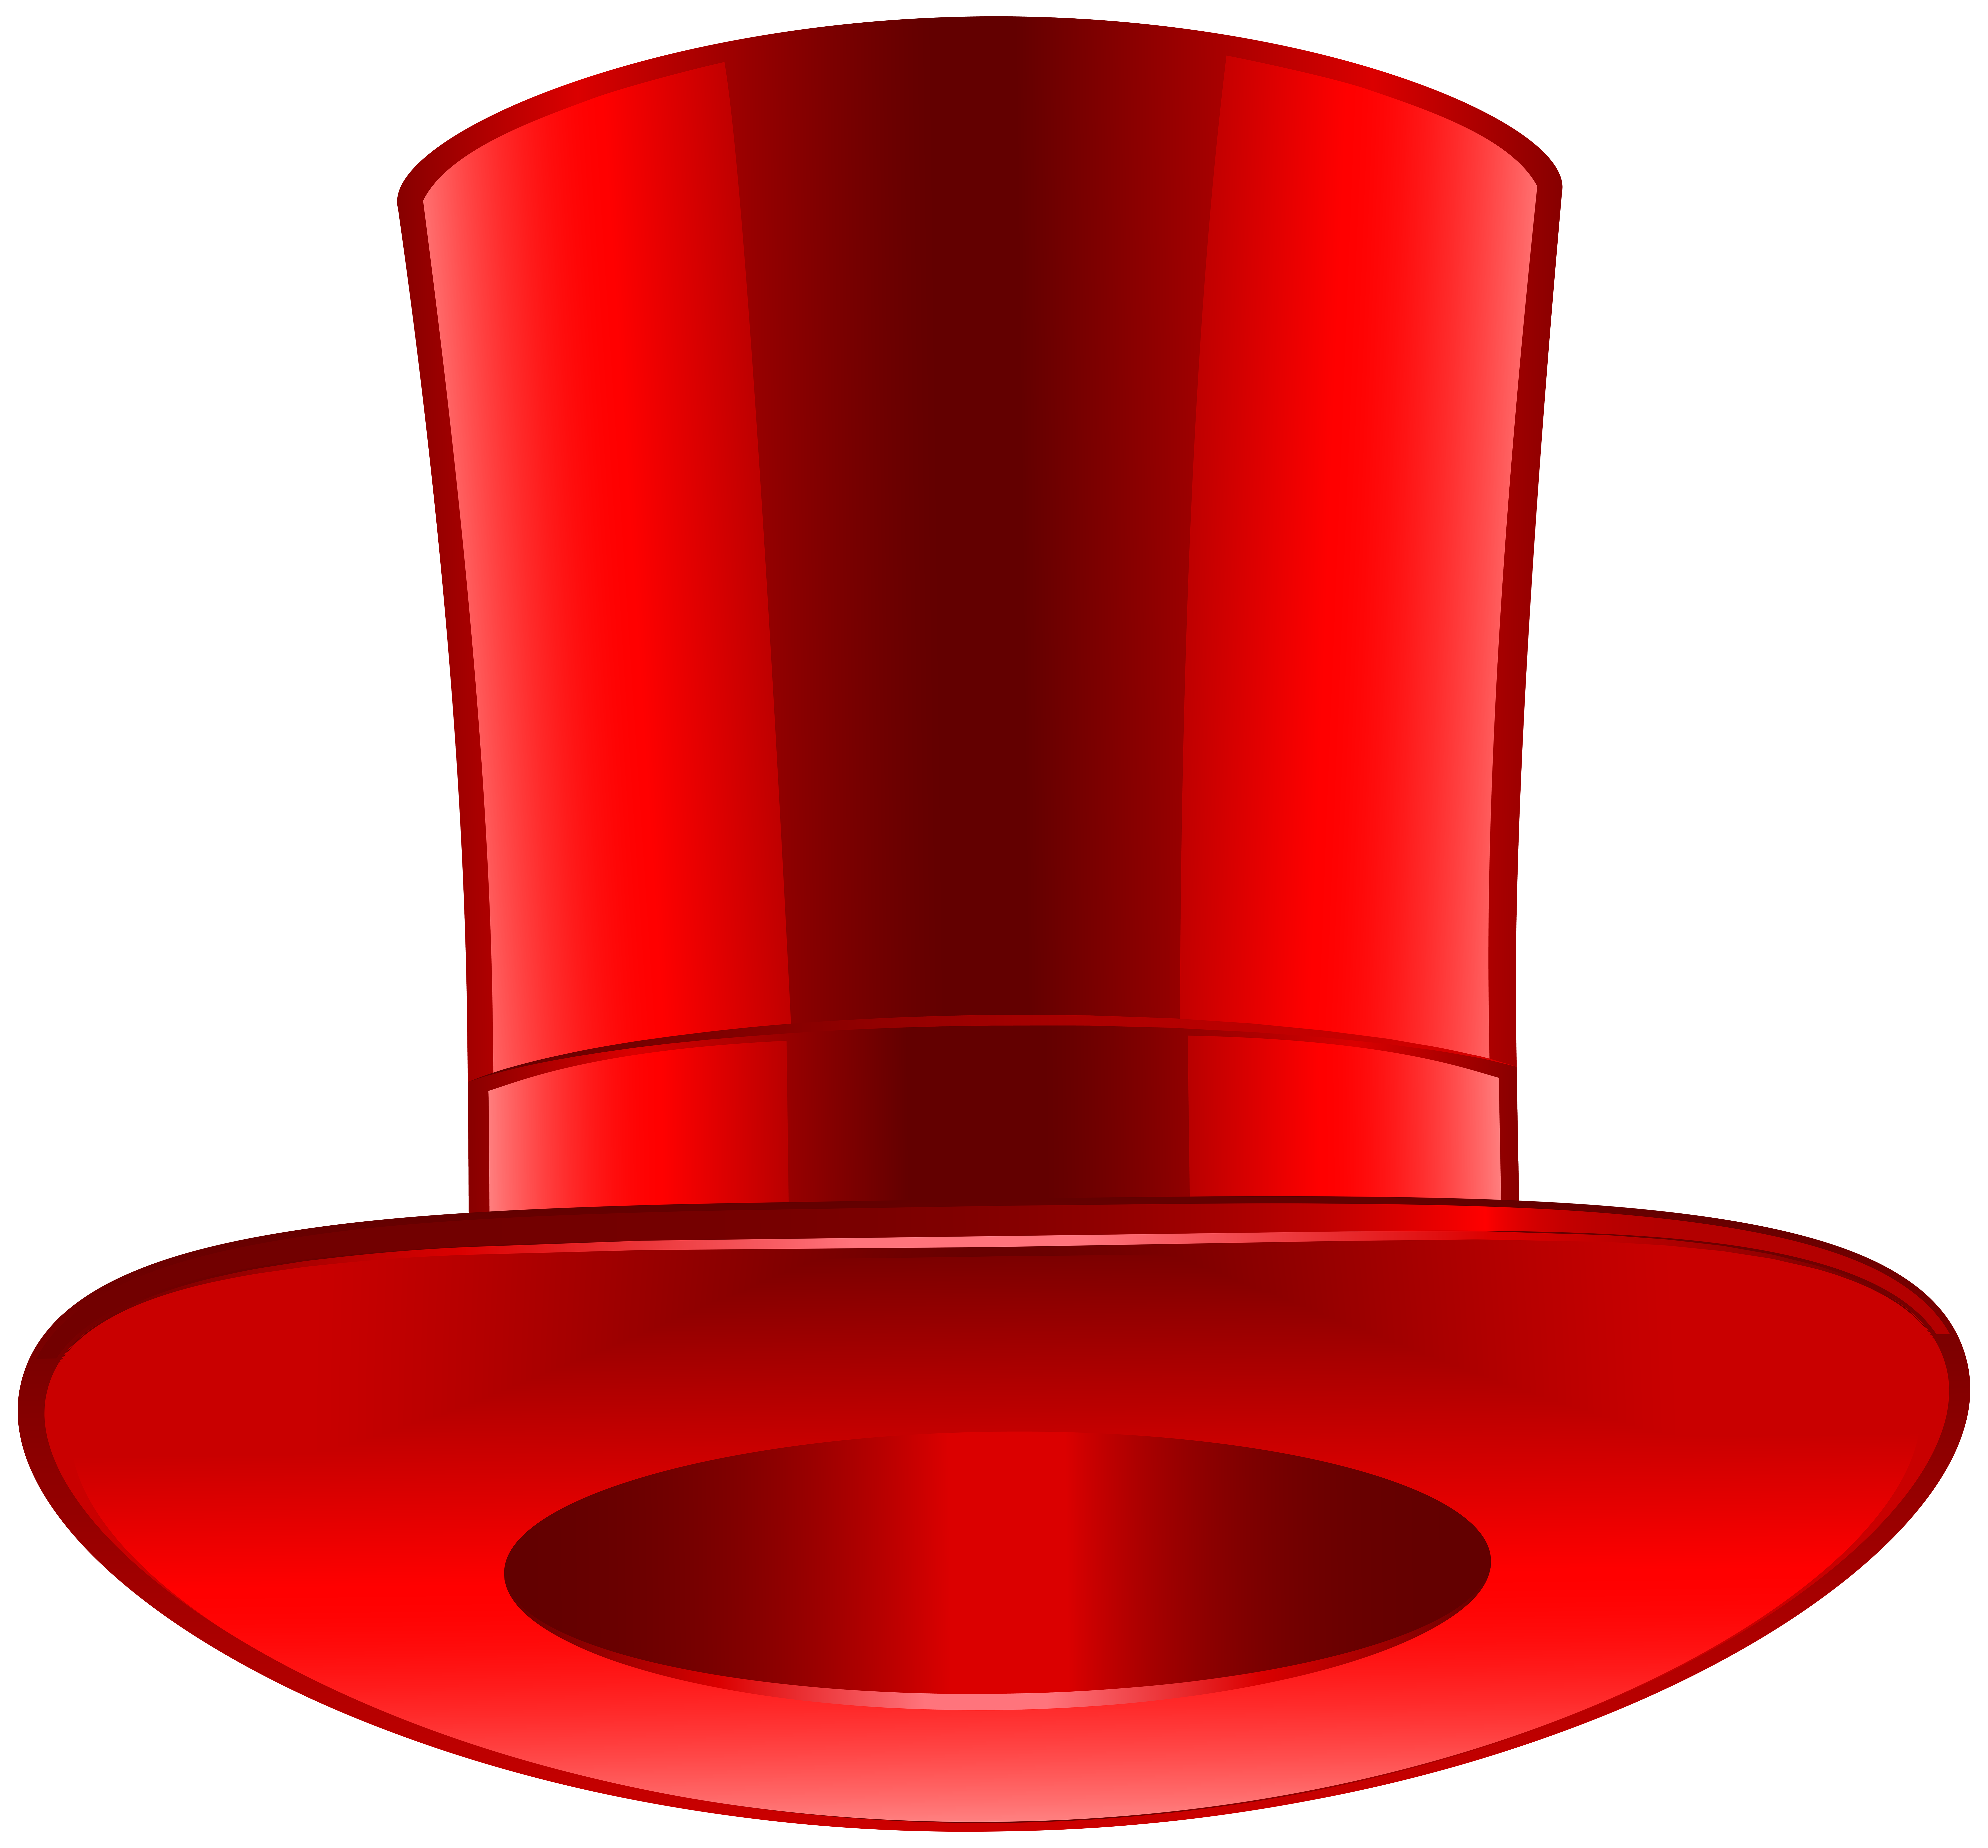 Red cube png. Top hat clip art